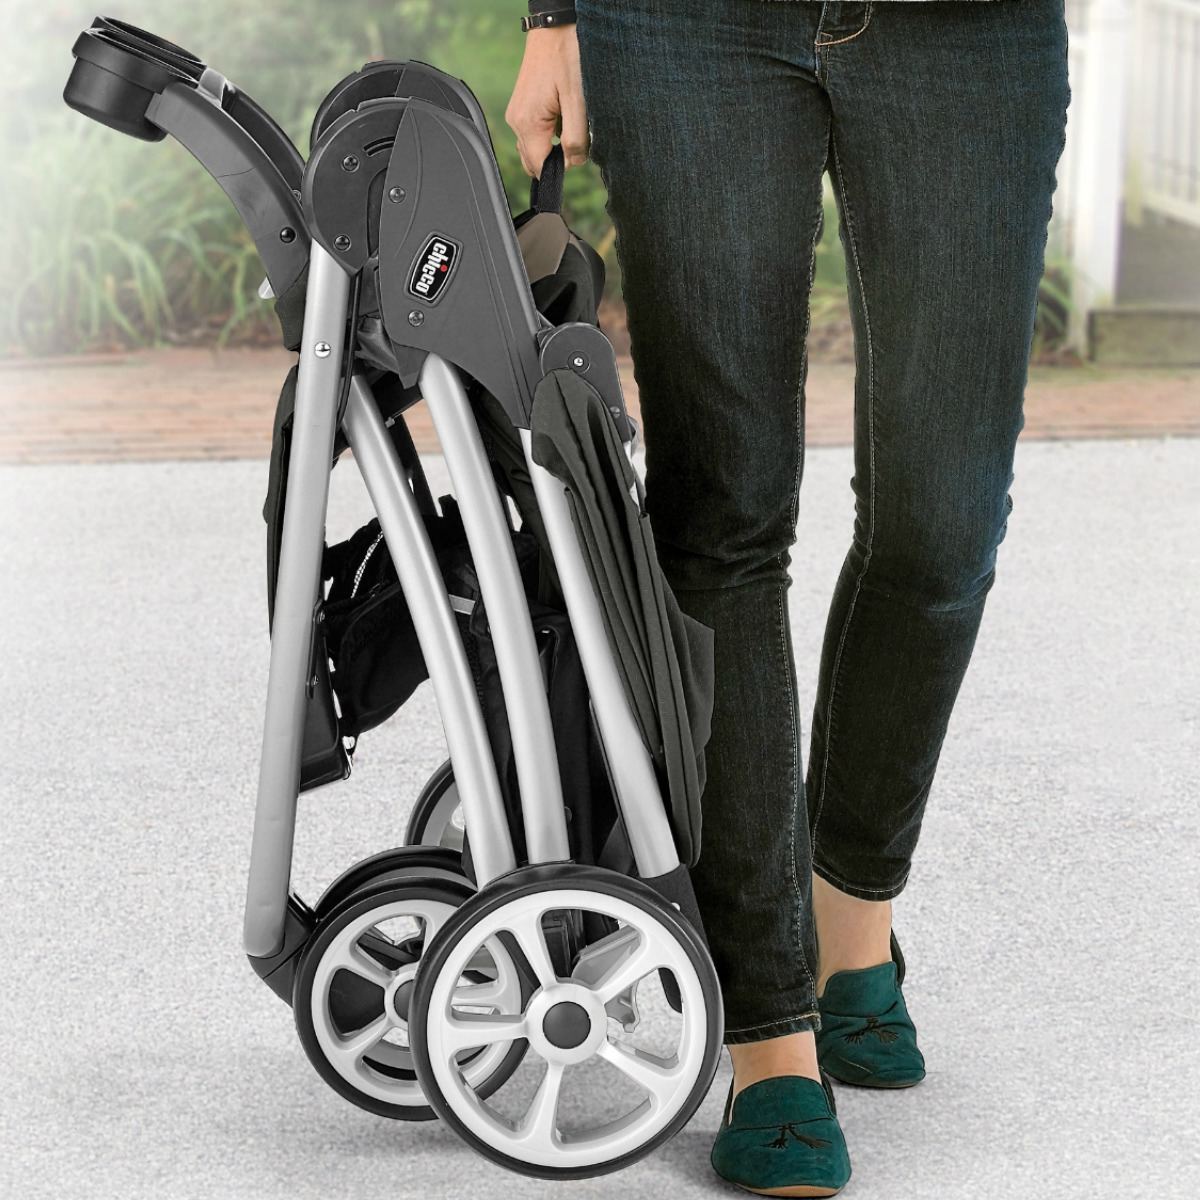 Chicco Stroller Promo Codes